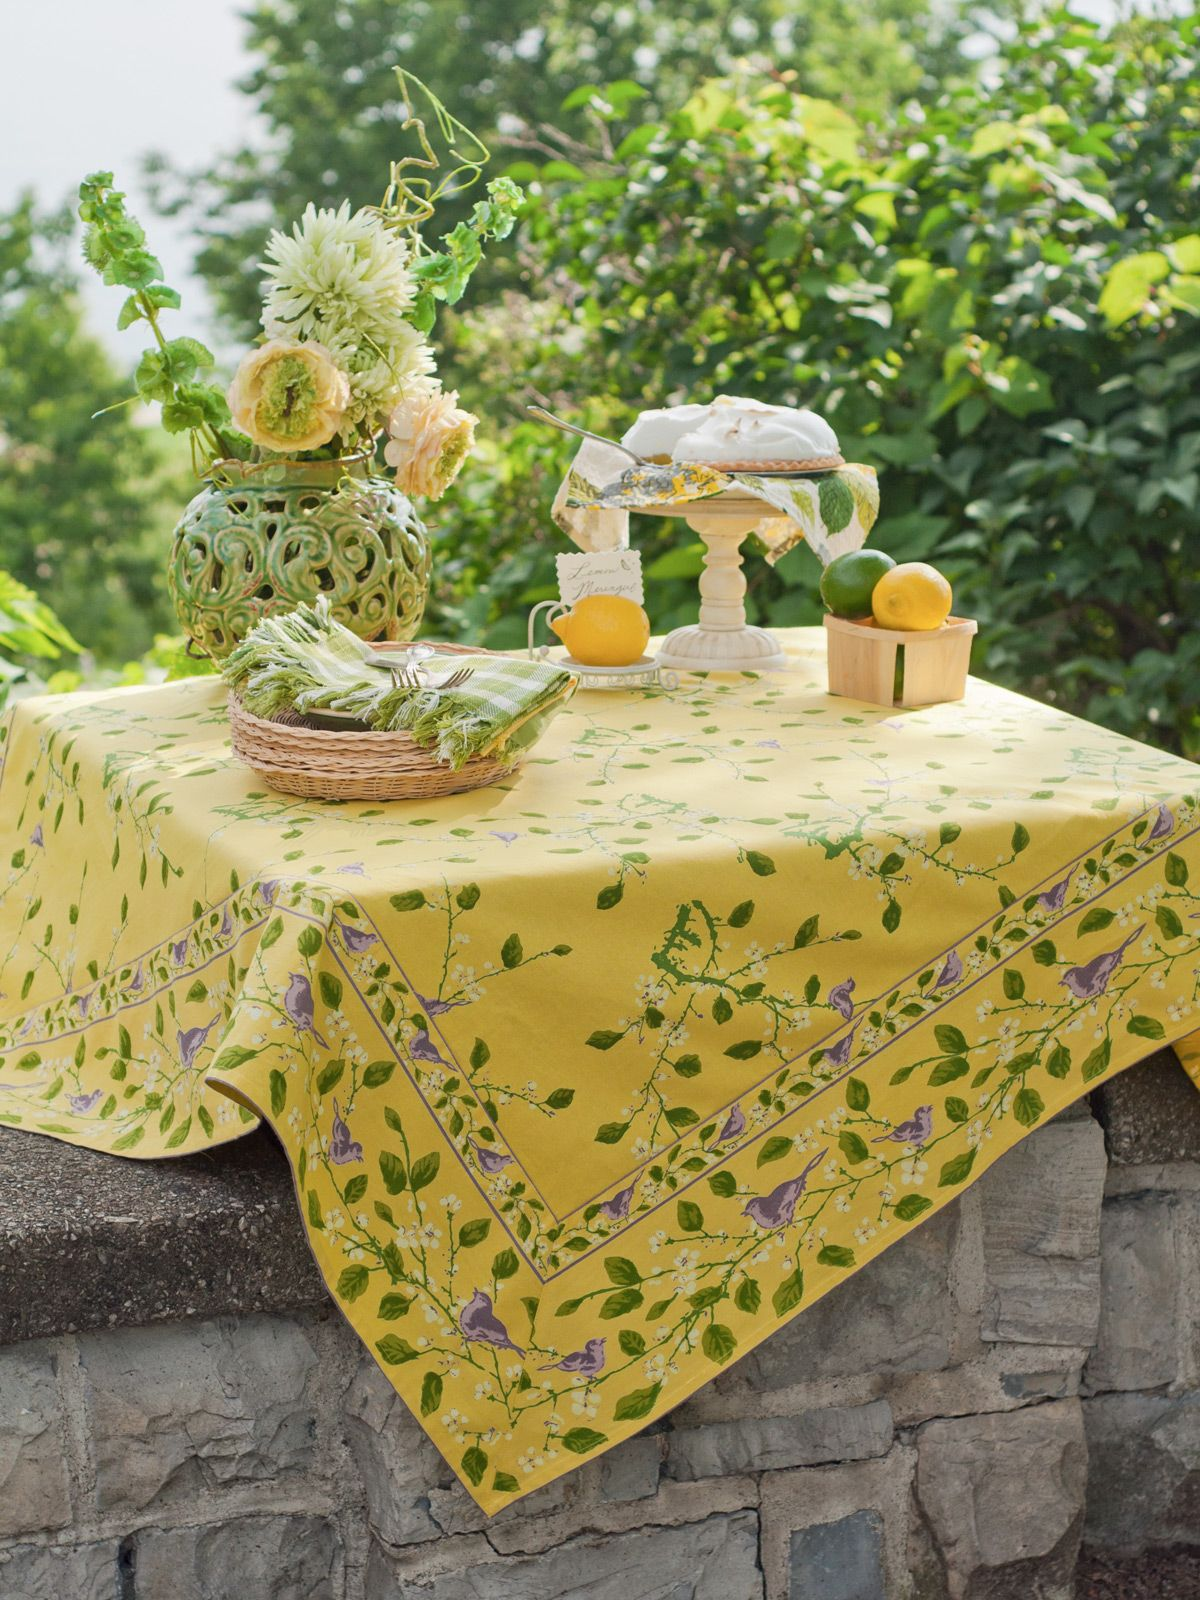 Willow Branch Tablecloth Table Linens Kitchen Tablecloths